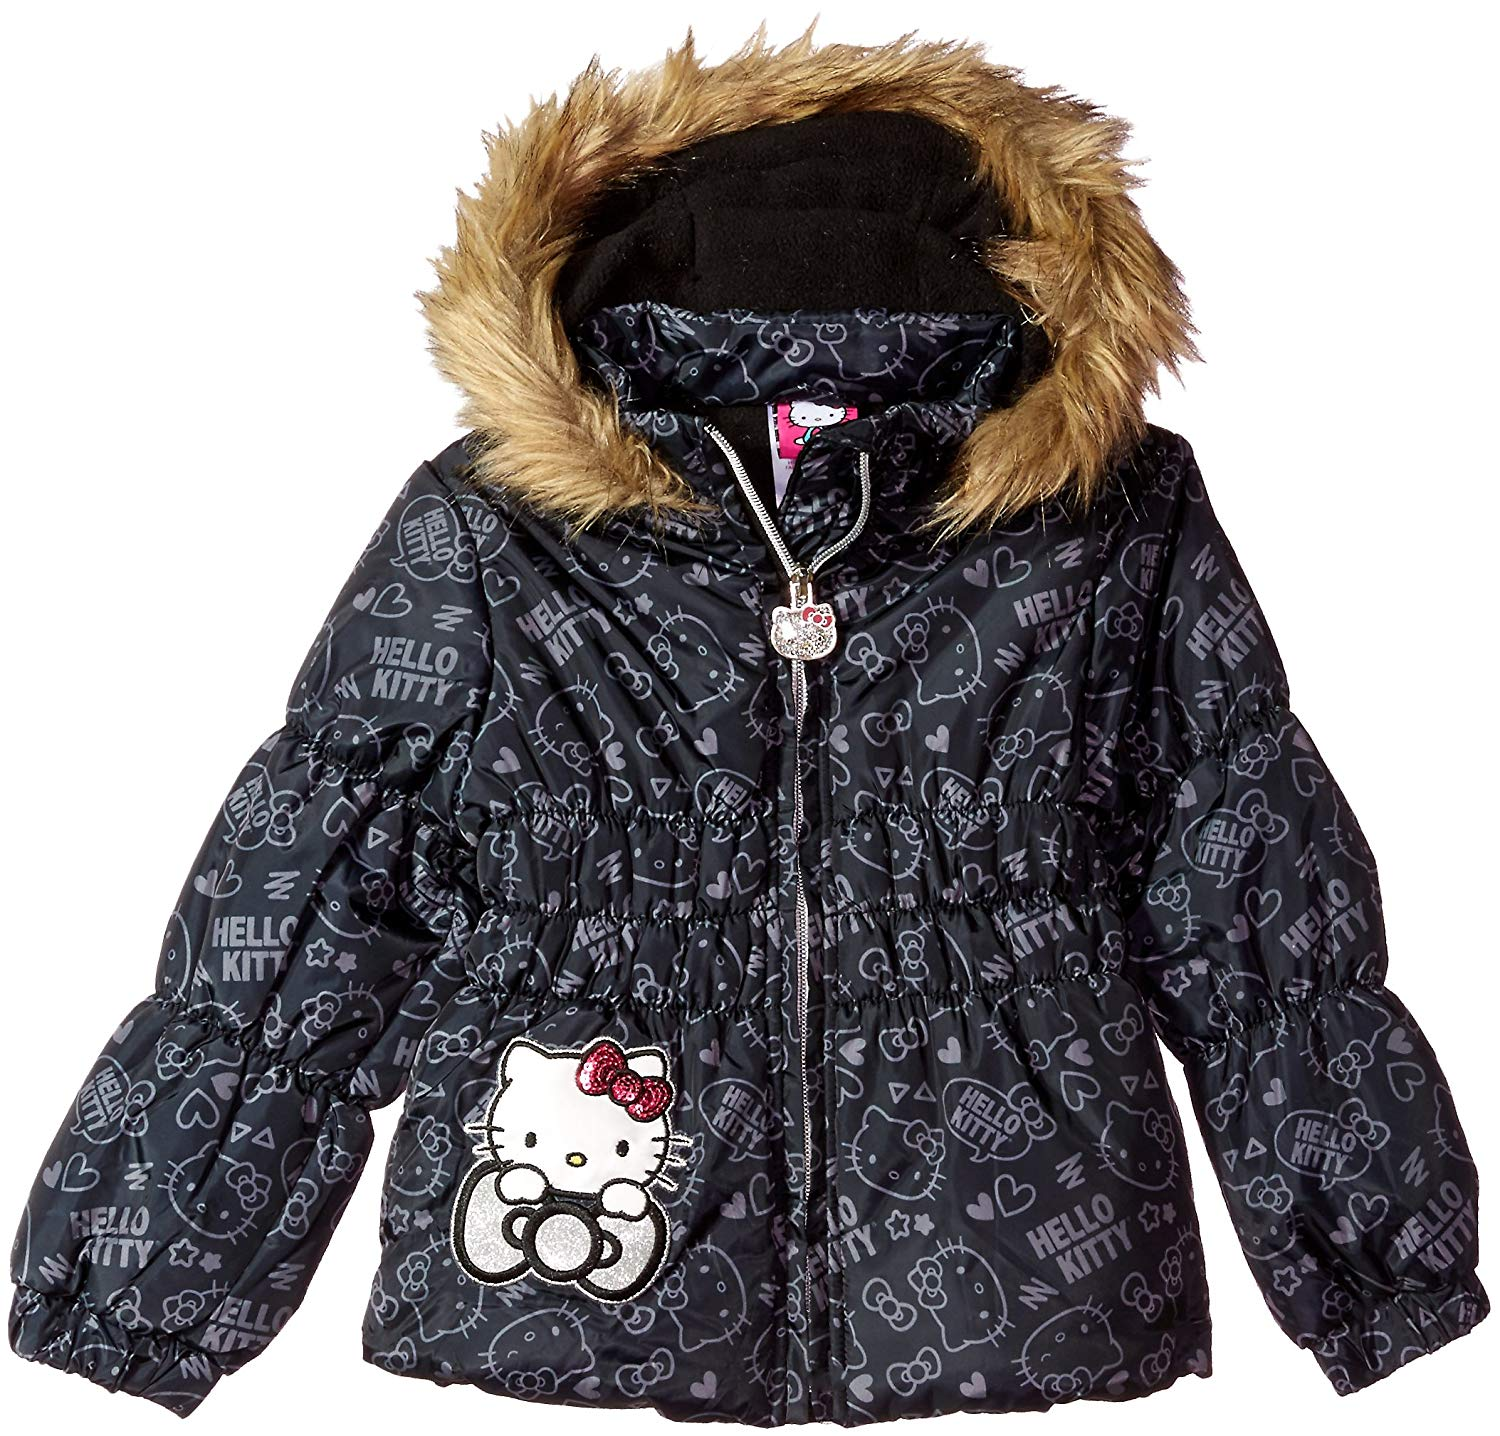 f9506acdb Get Quotations · Hello Kitty Girls' All Over Printed Puffer Jacket With Fur  Trim Hood